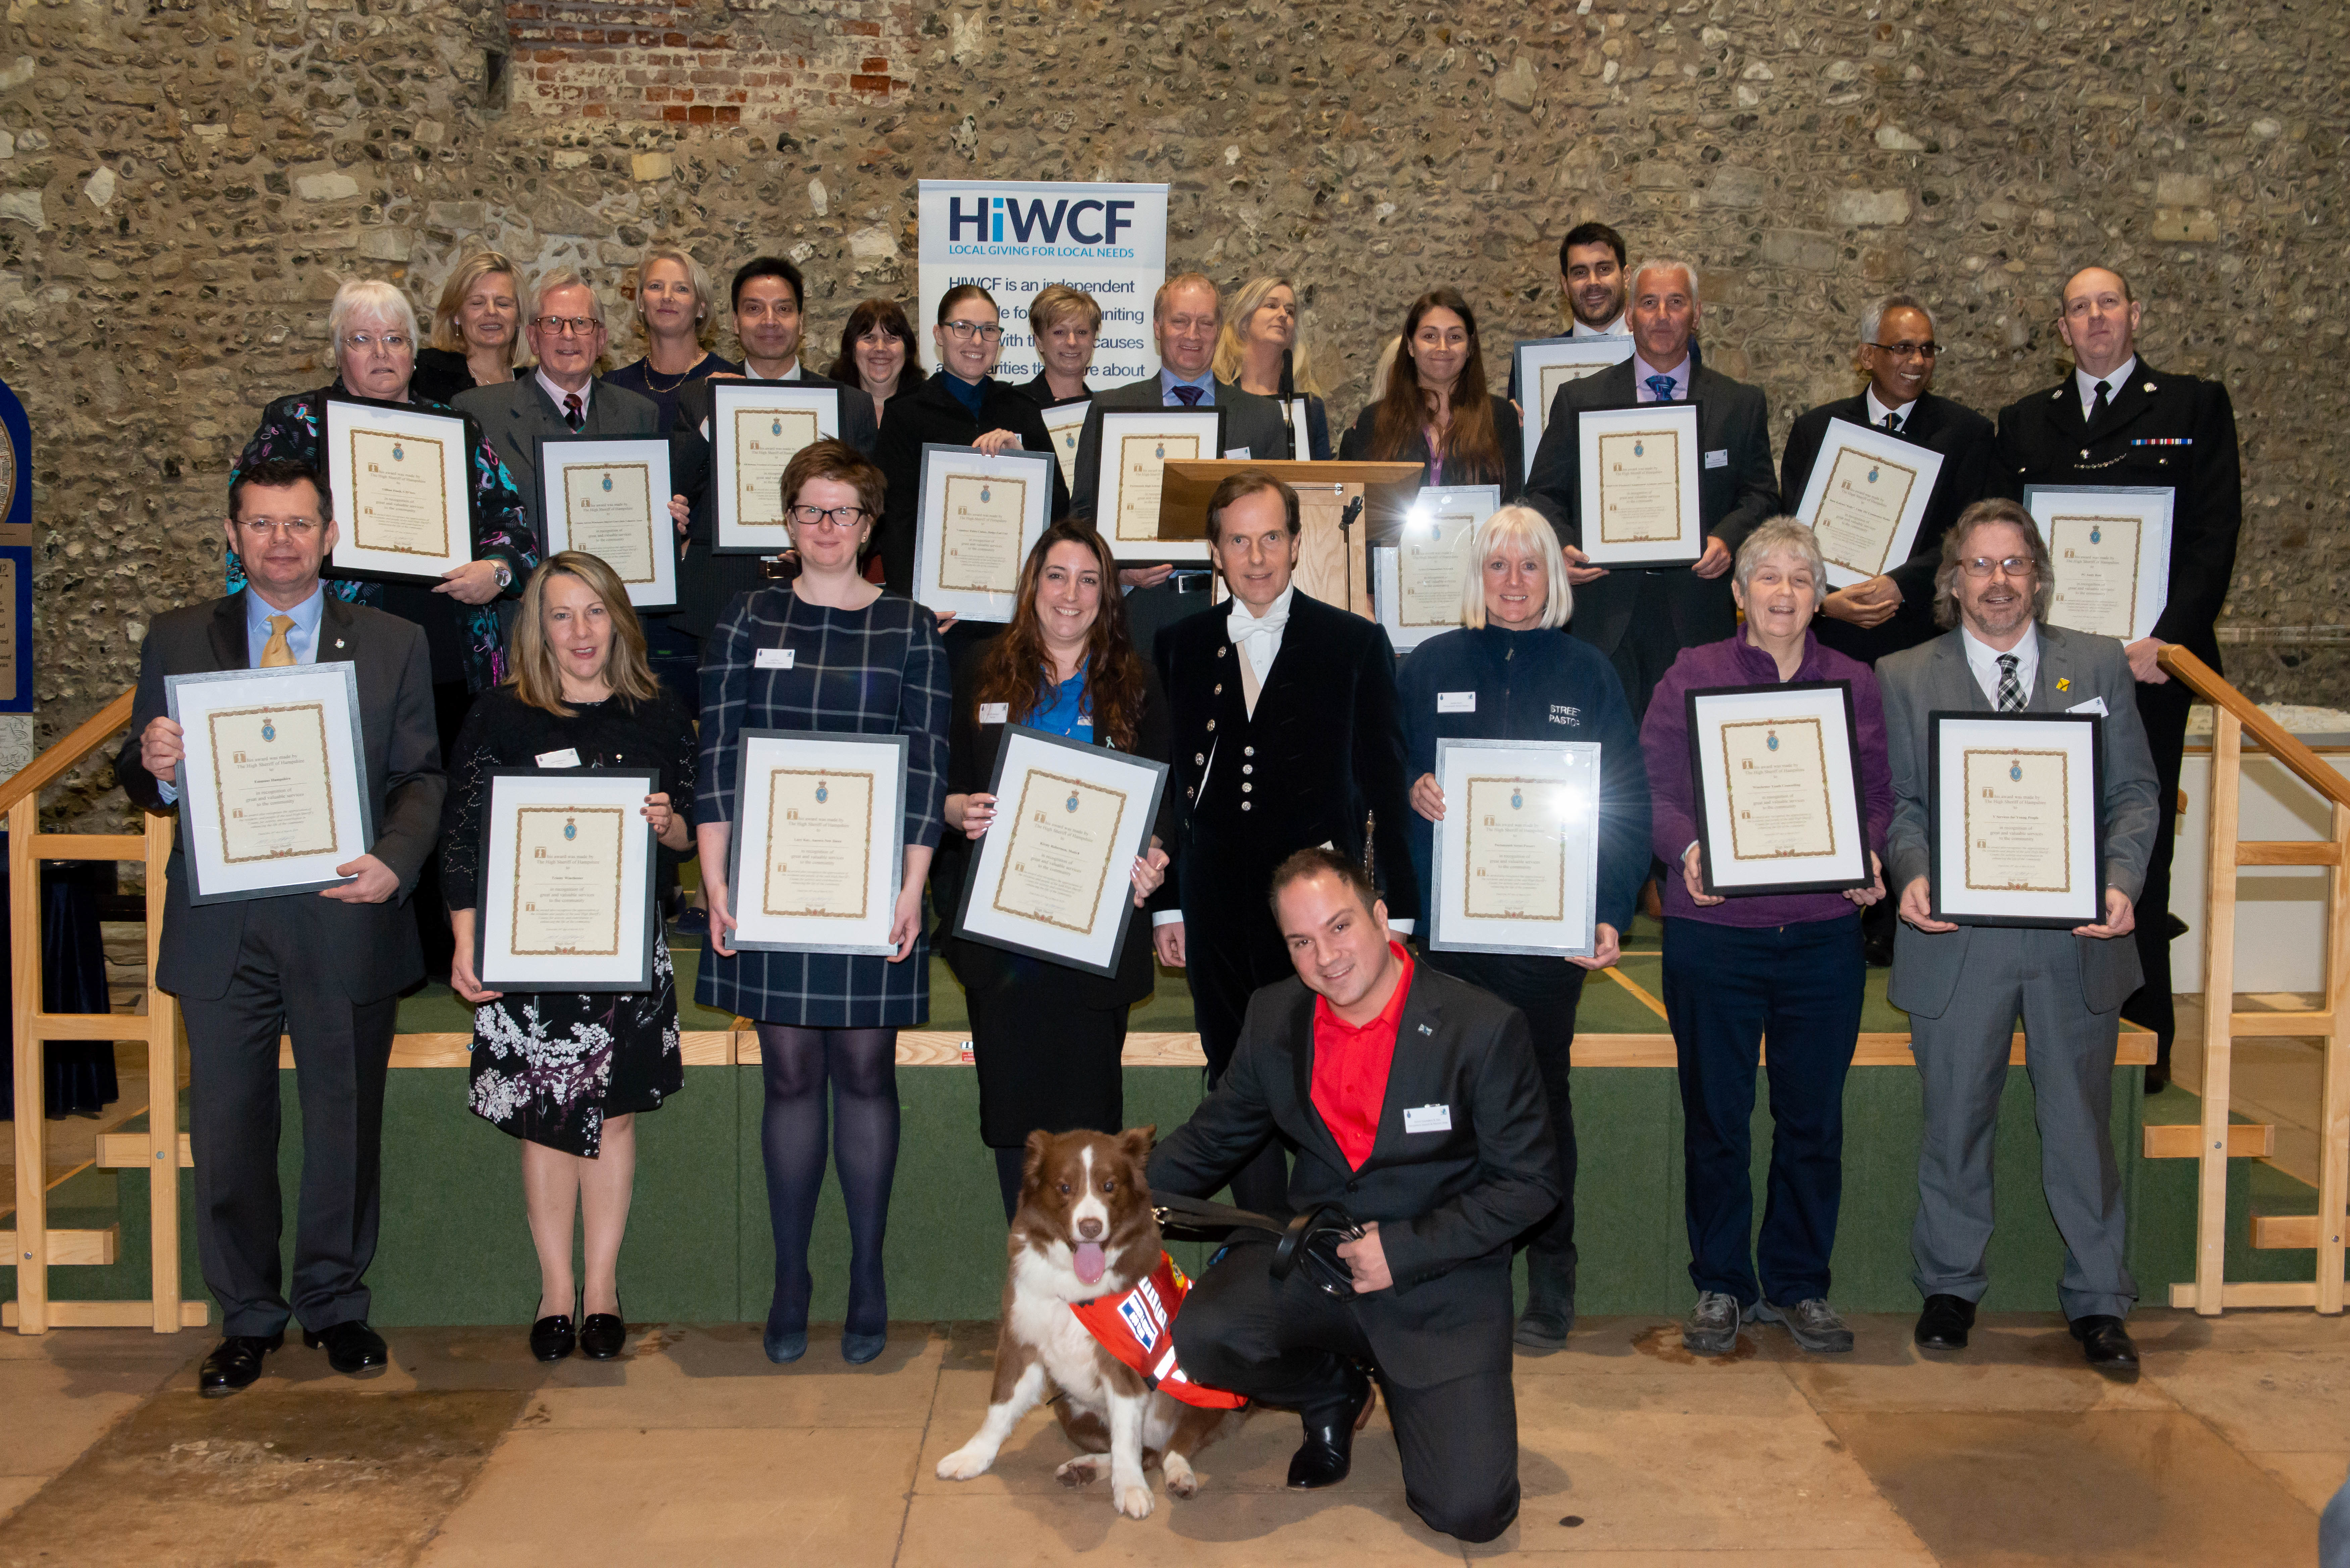 Kev Saunders wins Hampshire High Sheriff Award for 'Going beyond the Call of Duty'  (Pictured: Kev Saunders & Search Dog Zak from Hampshire Search & Rescue Dogs)